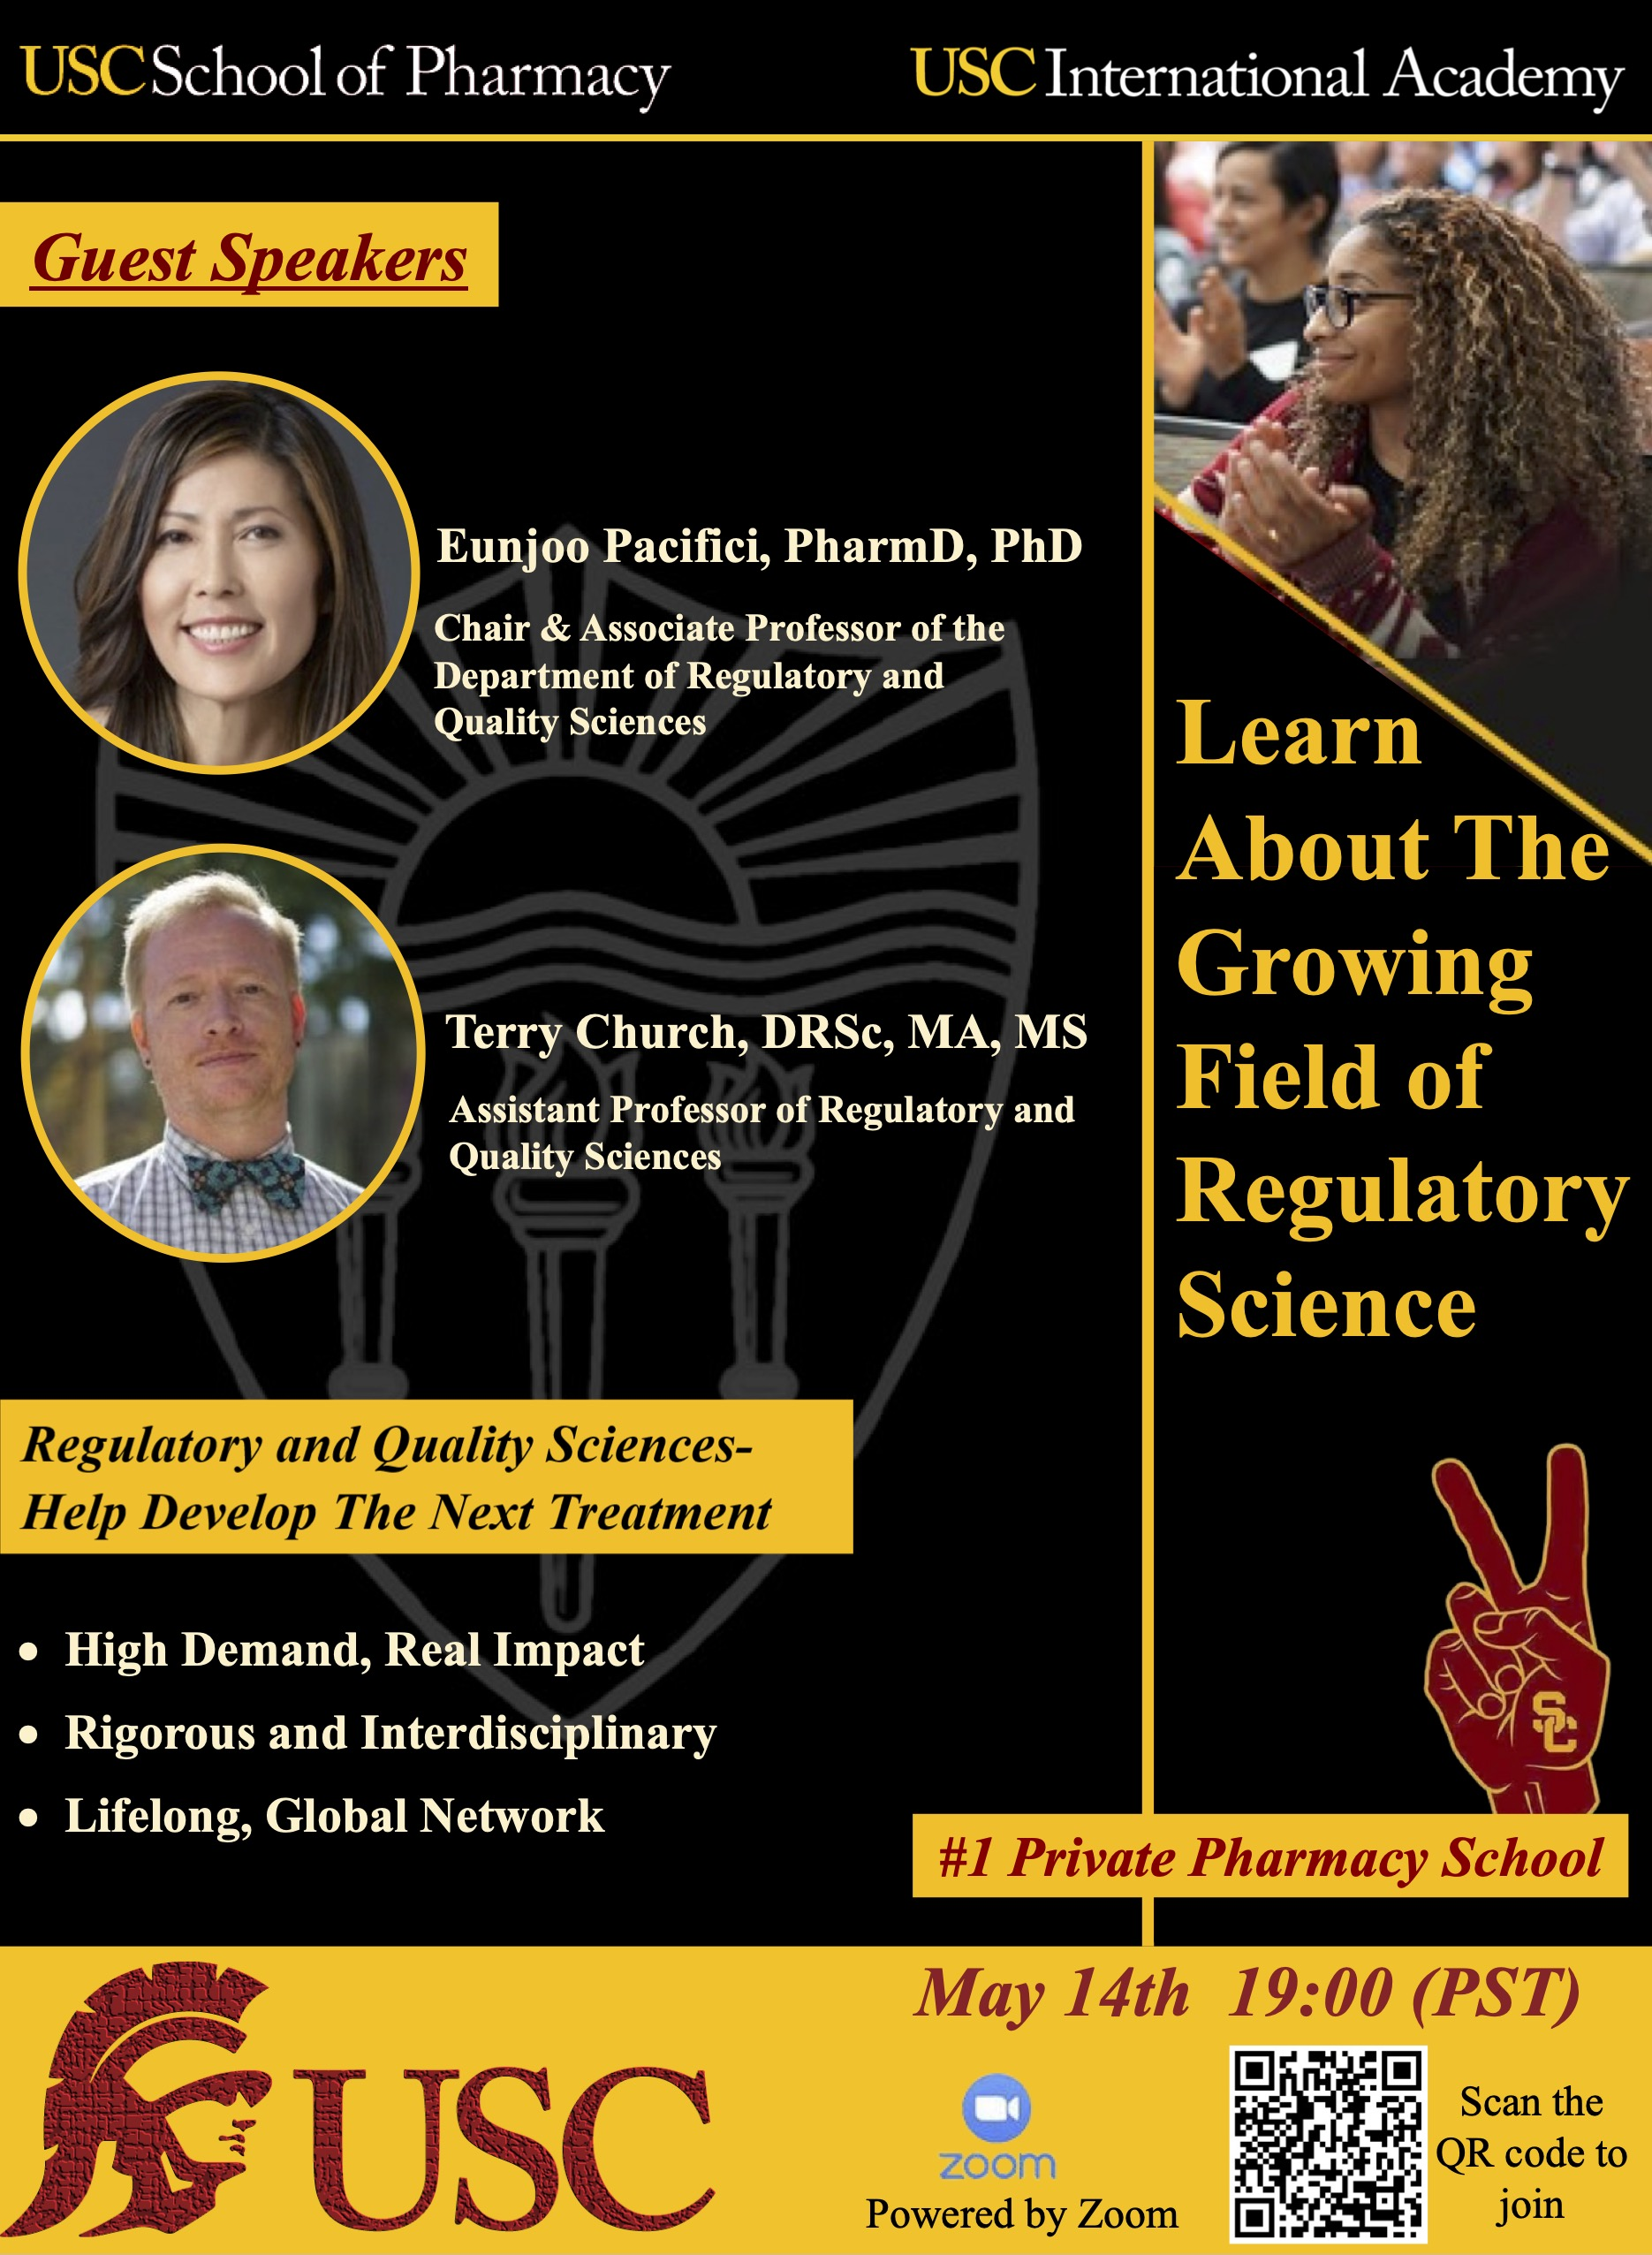 "USC School of Pharmacy Event ""Learn About The Growing Field of Regulatory Science"" on May 14th"